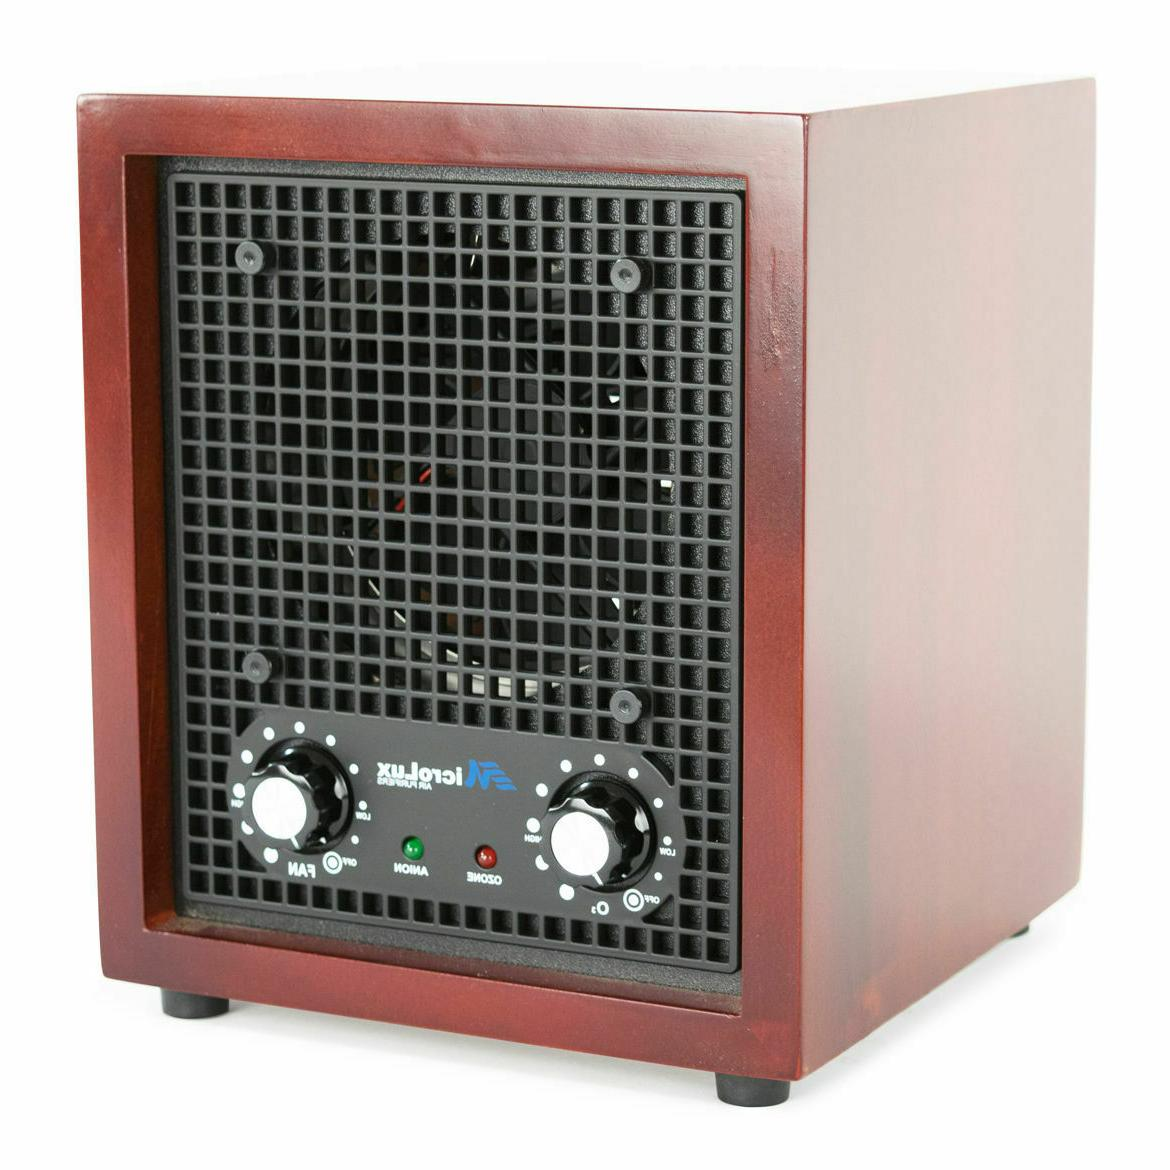 MicroLux Office UV Purifier Carbon Ion Air Cleaner -